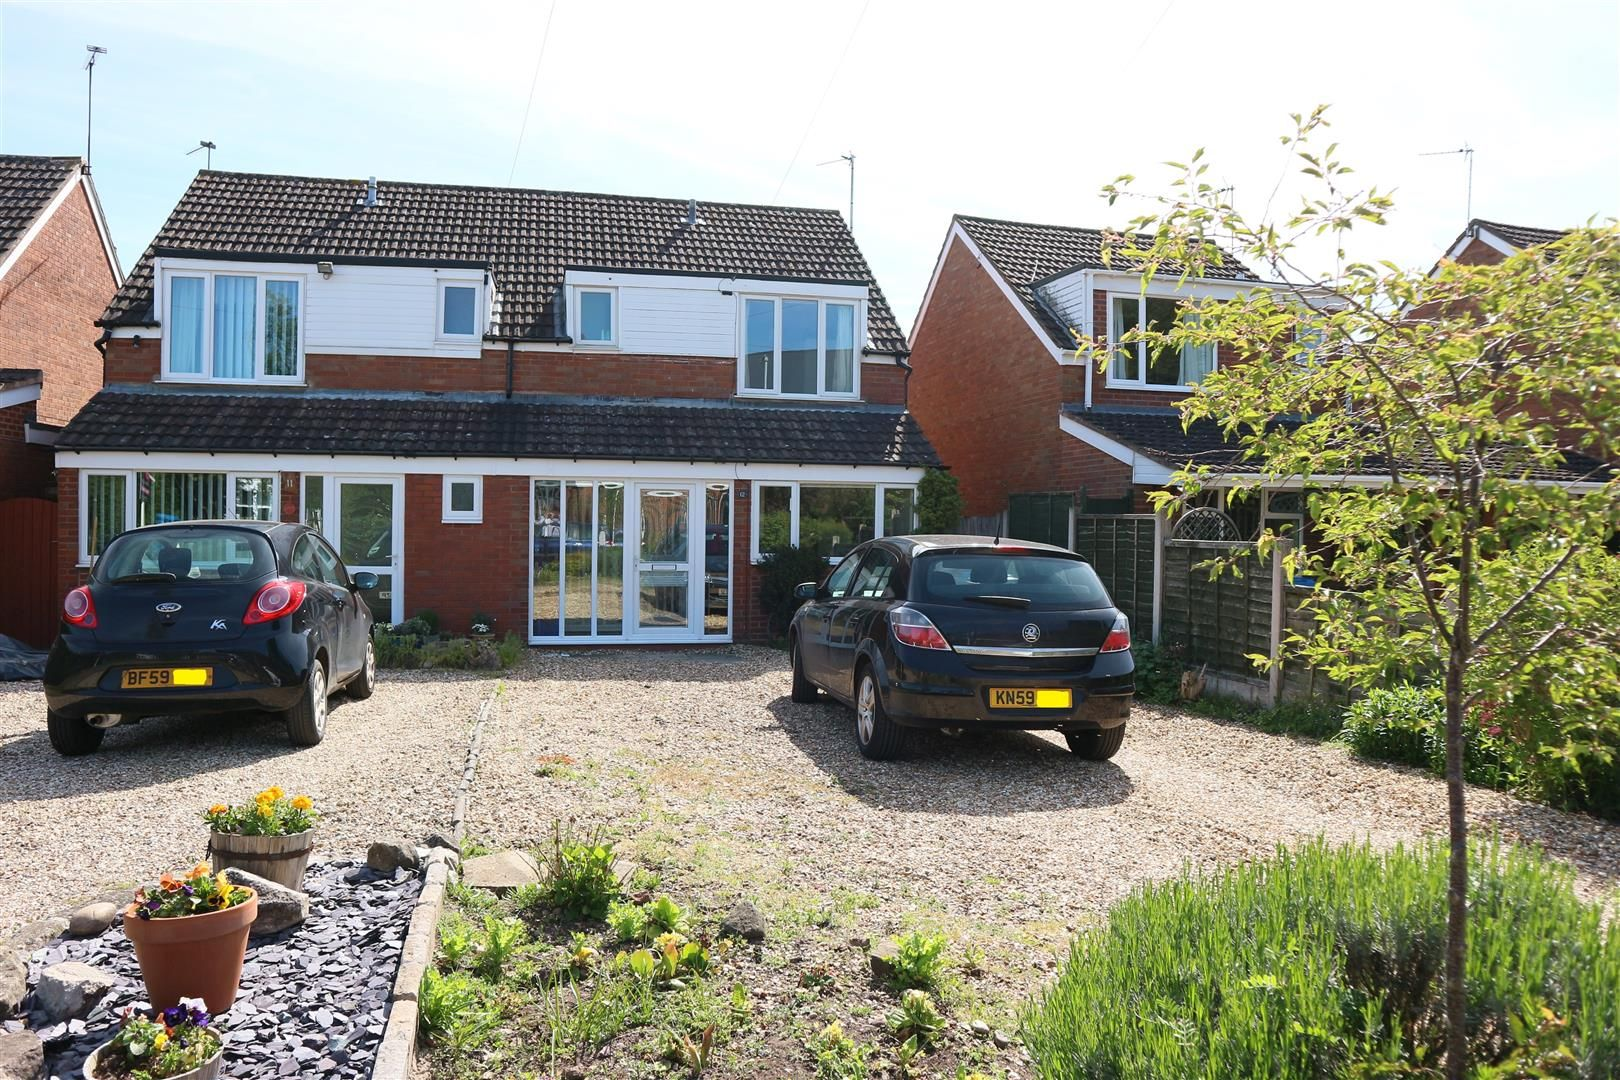 3 bed semi-detached for sale in Kinver, DY7